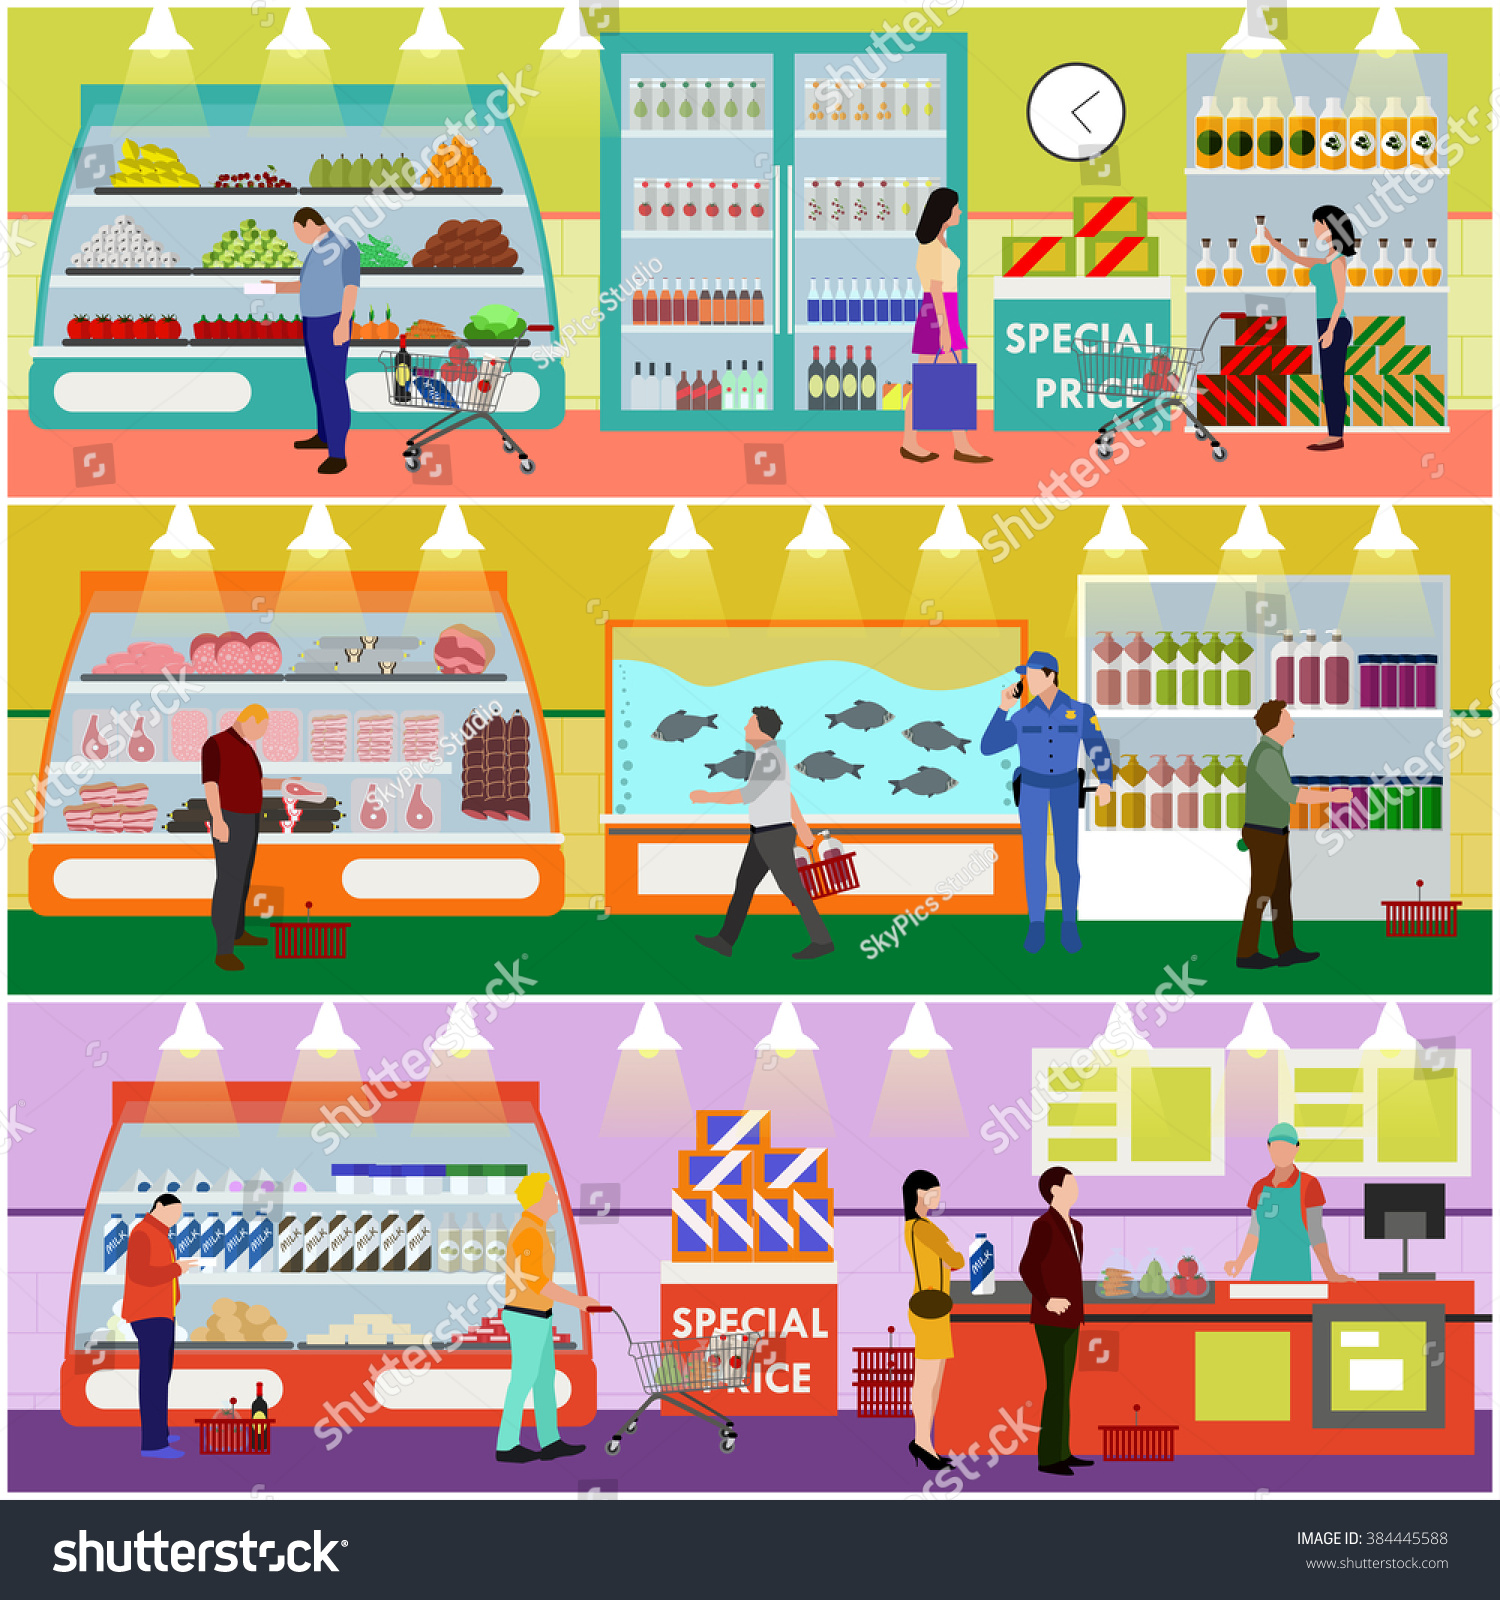 Supermarket Interior Vector Illustration In Flat Style Customers Buy Products In Food Store